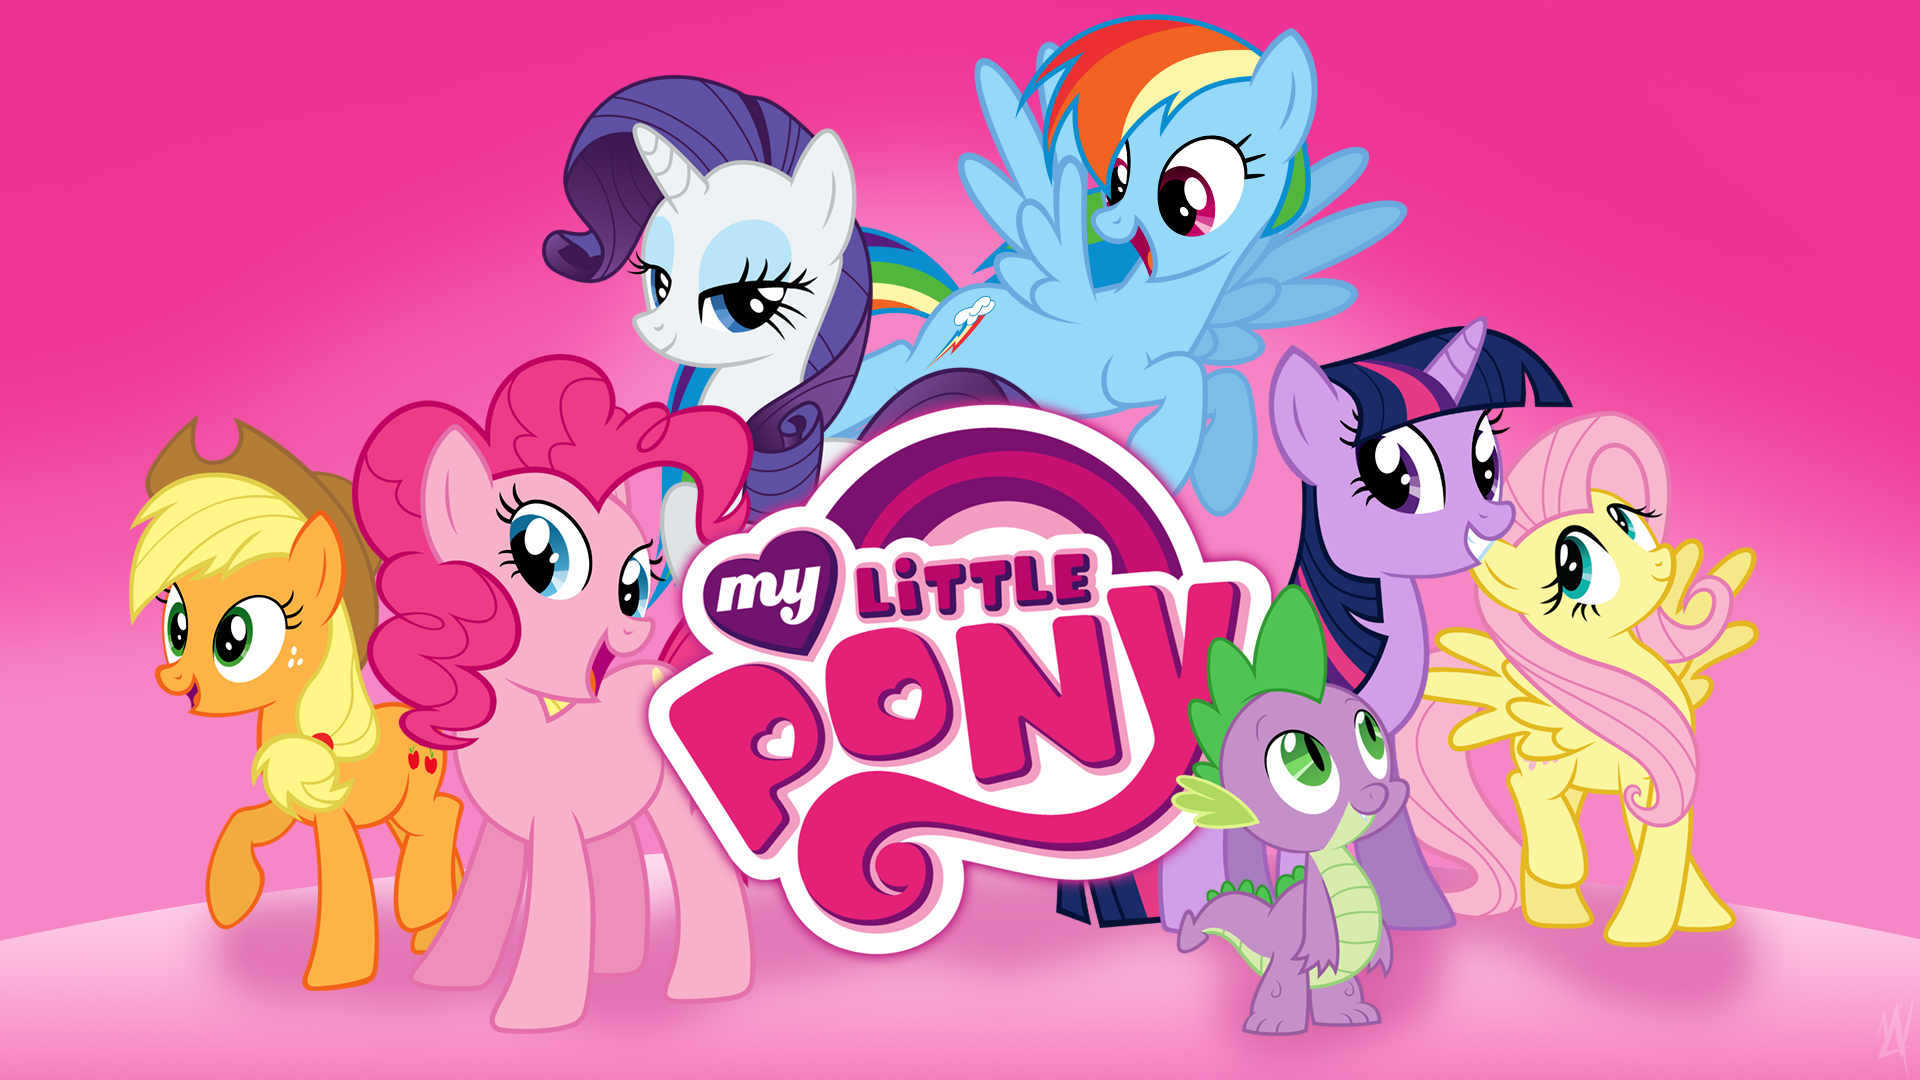 50 My Little Pony Live Wallpaper On Wallpapersafari